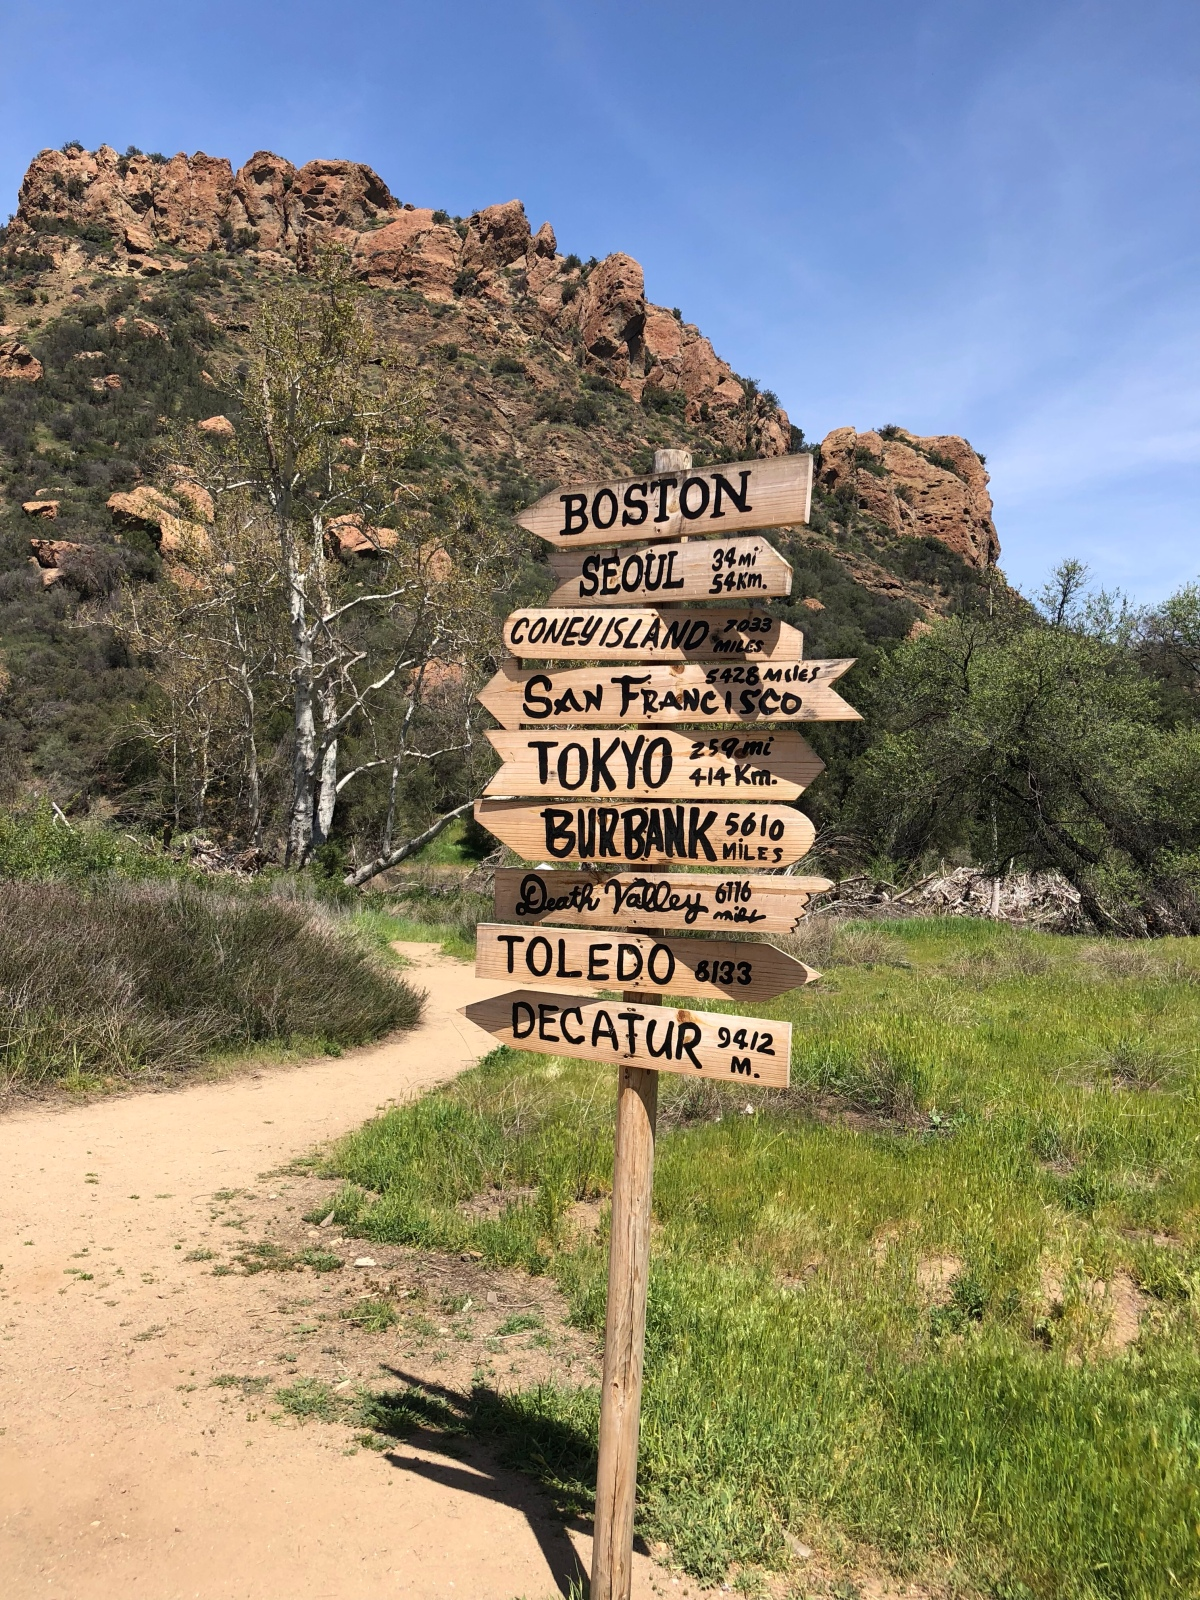 Sunday Hikes:  Hiking to M*A*S*H in Malibu Creek StatePark